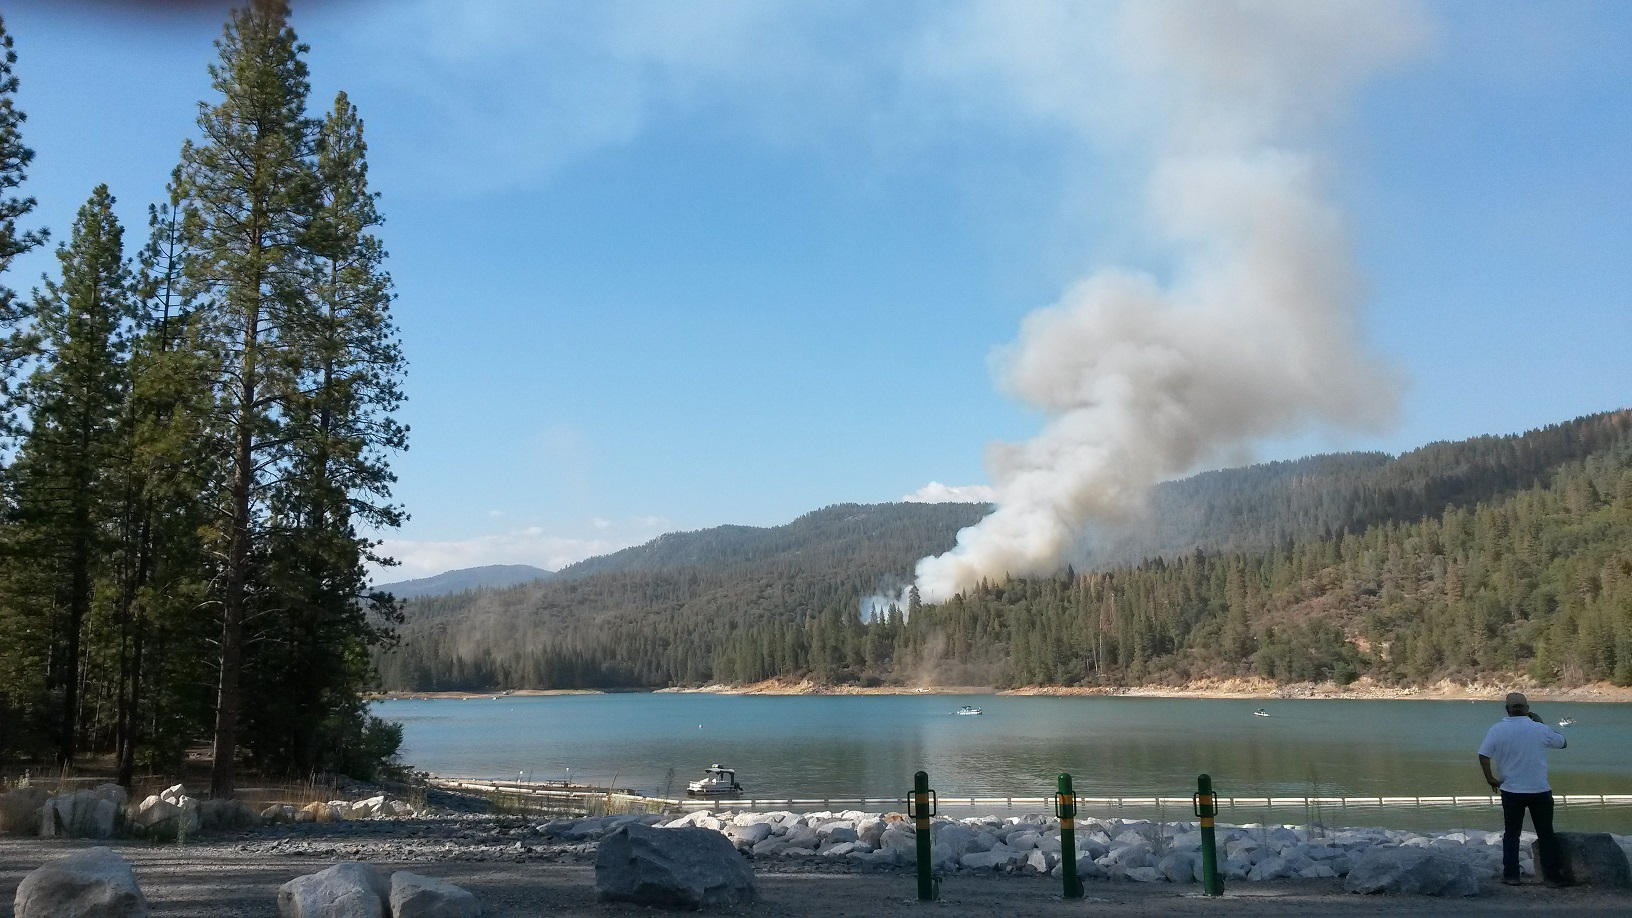 Pines Fire from Bass Lake Dam - photo by Ginger Foust